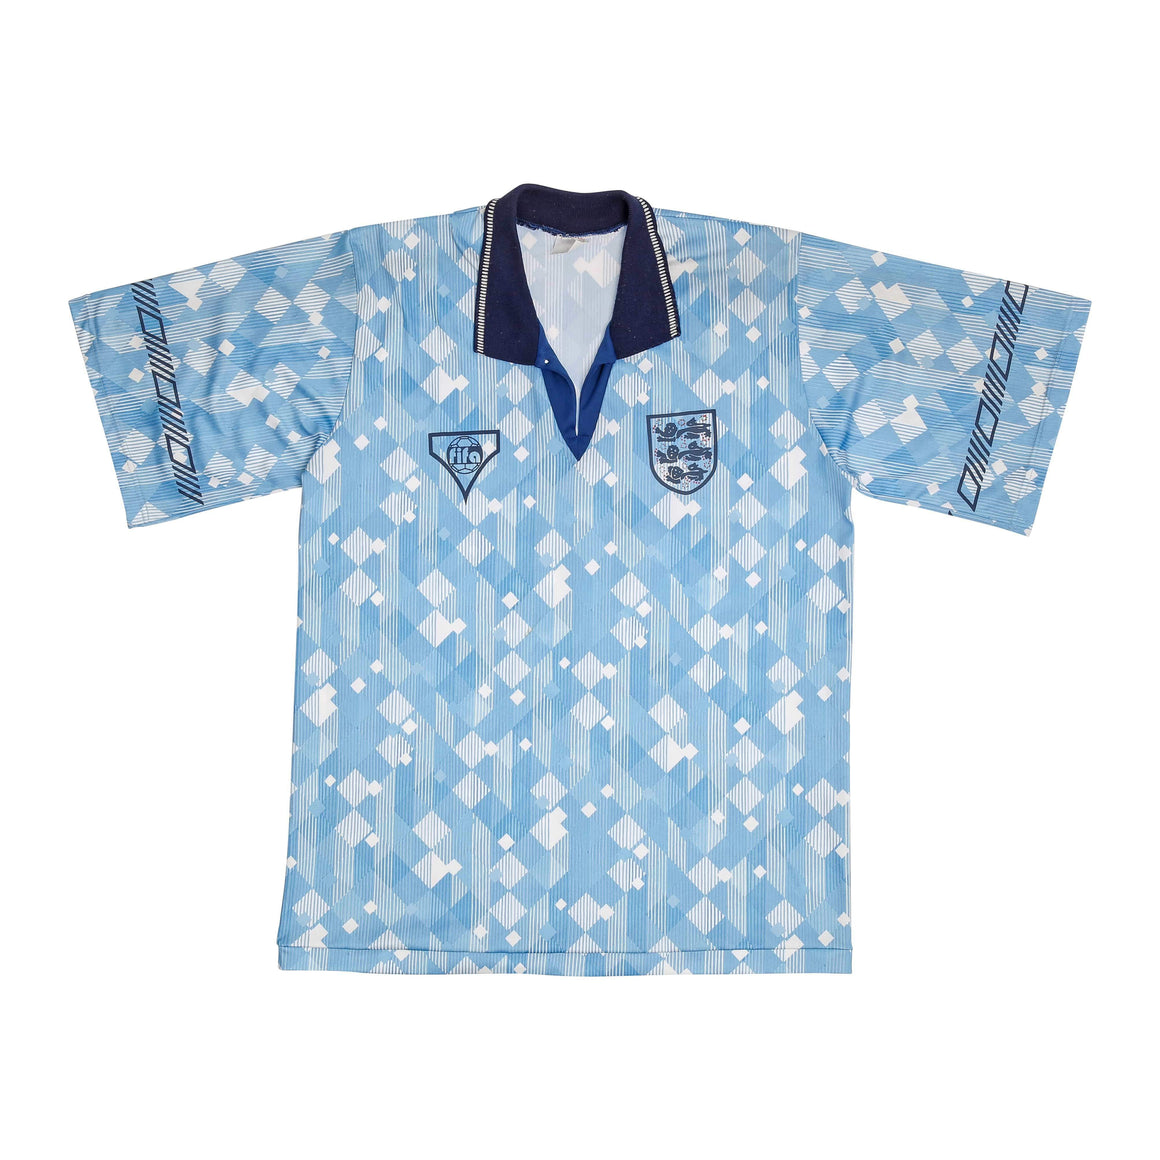 1990 England 3rd shirt replica - Football Shirt Collective